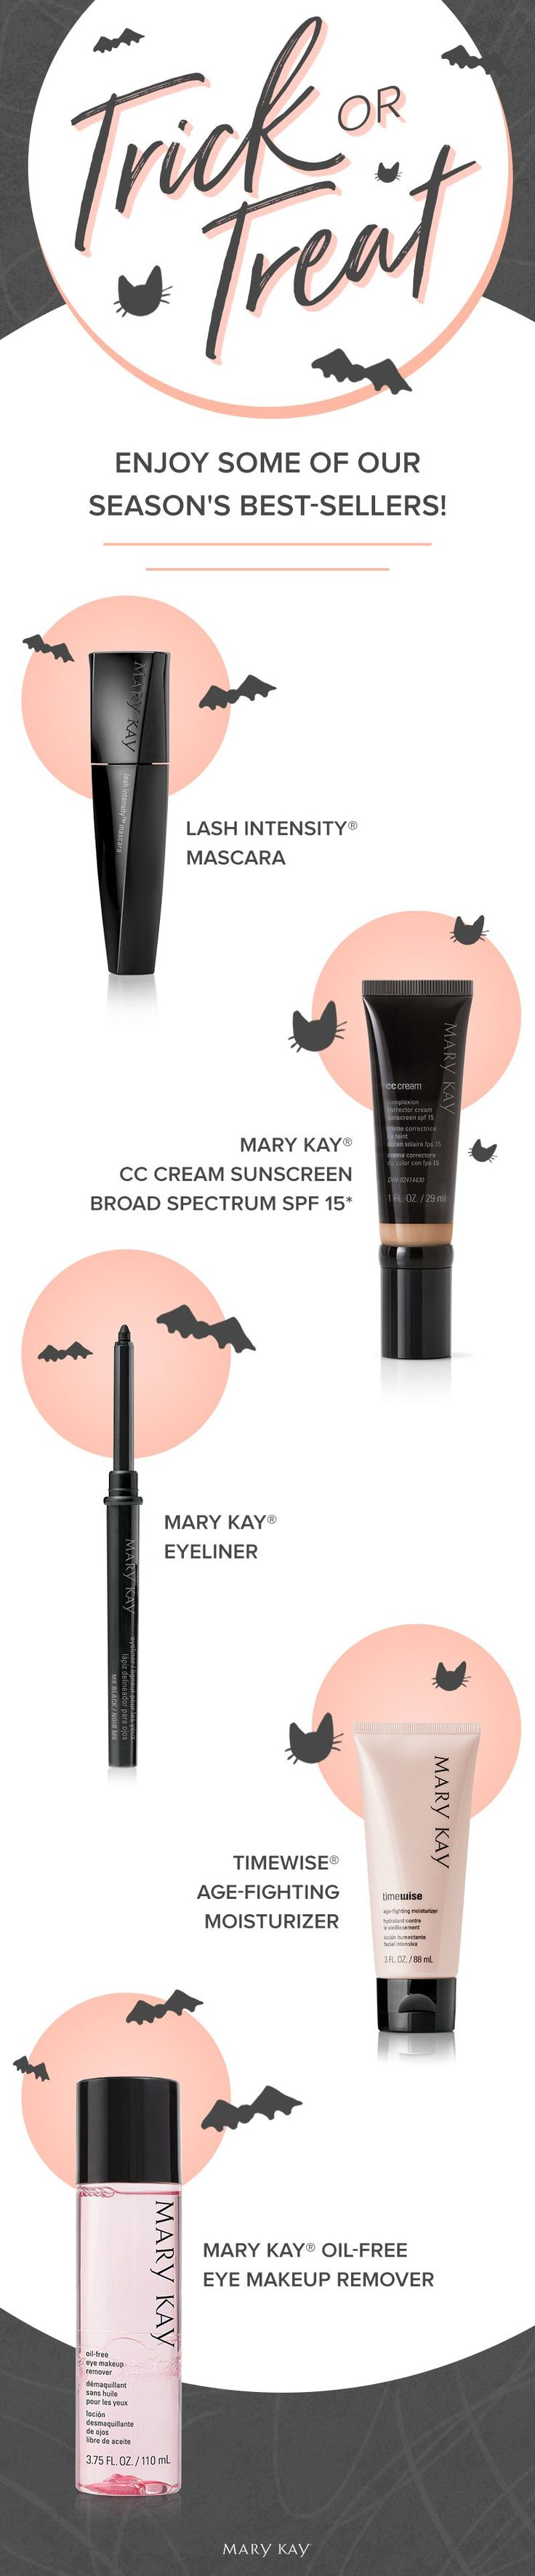 When you've got it, haunt it! Update your skin care and makeup routine with our best-sellers for fall. Click for more boo-tiful Halloween treats! | Mary Kay